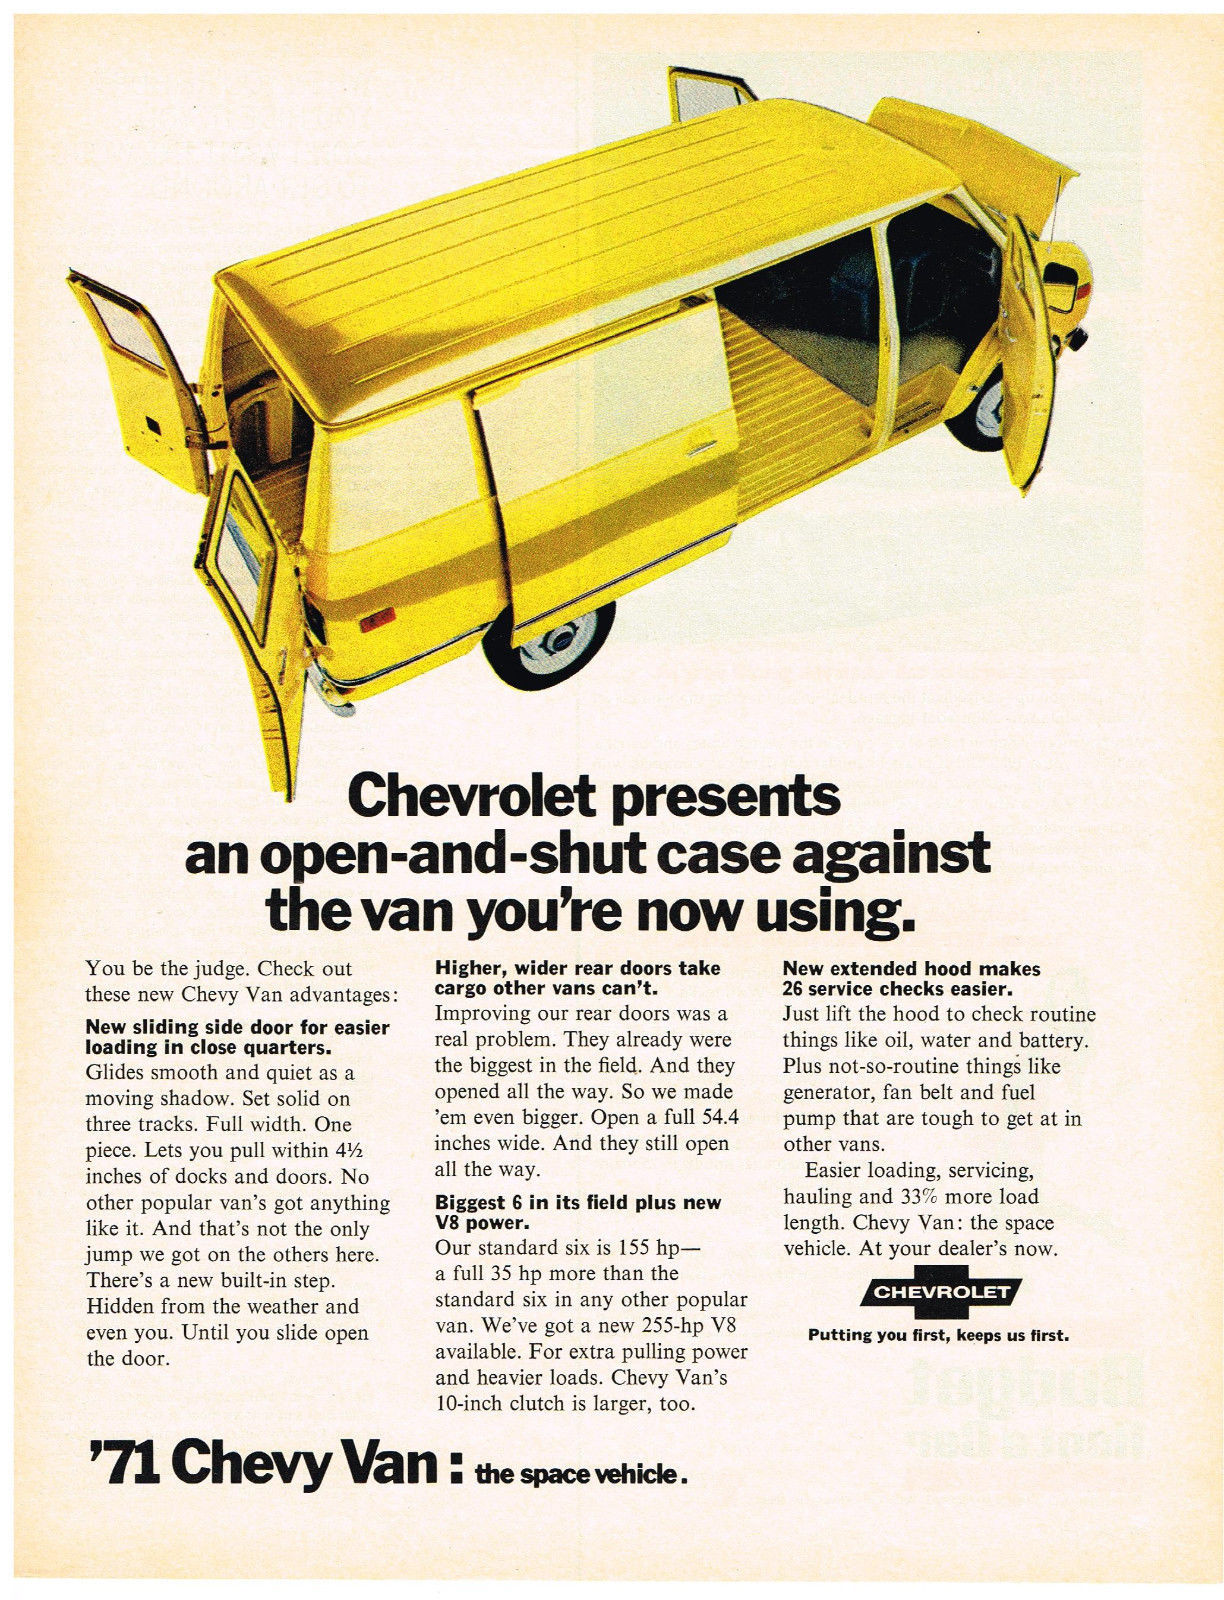 Vintage 1971 Magazine Ad For Chevrolet Truck Putting You First Keeps Us First - $5.93